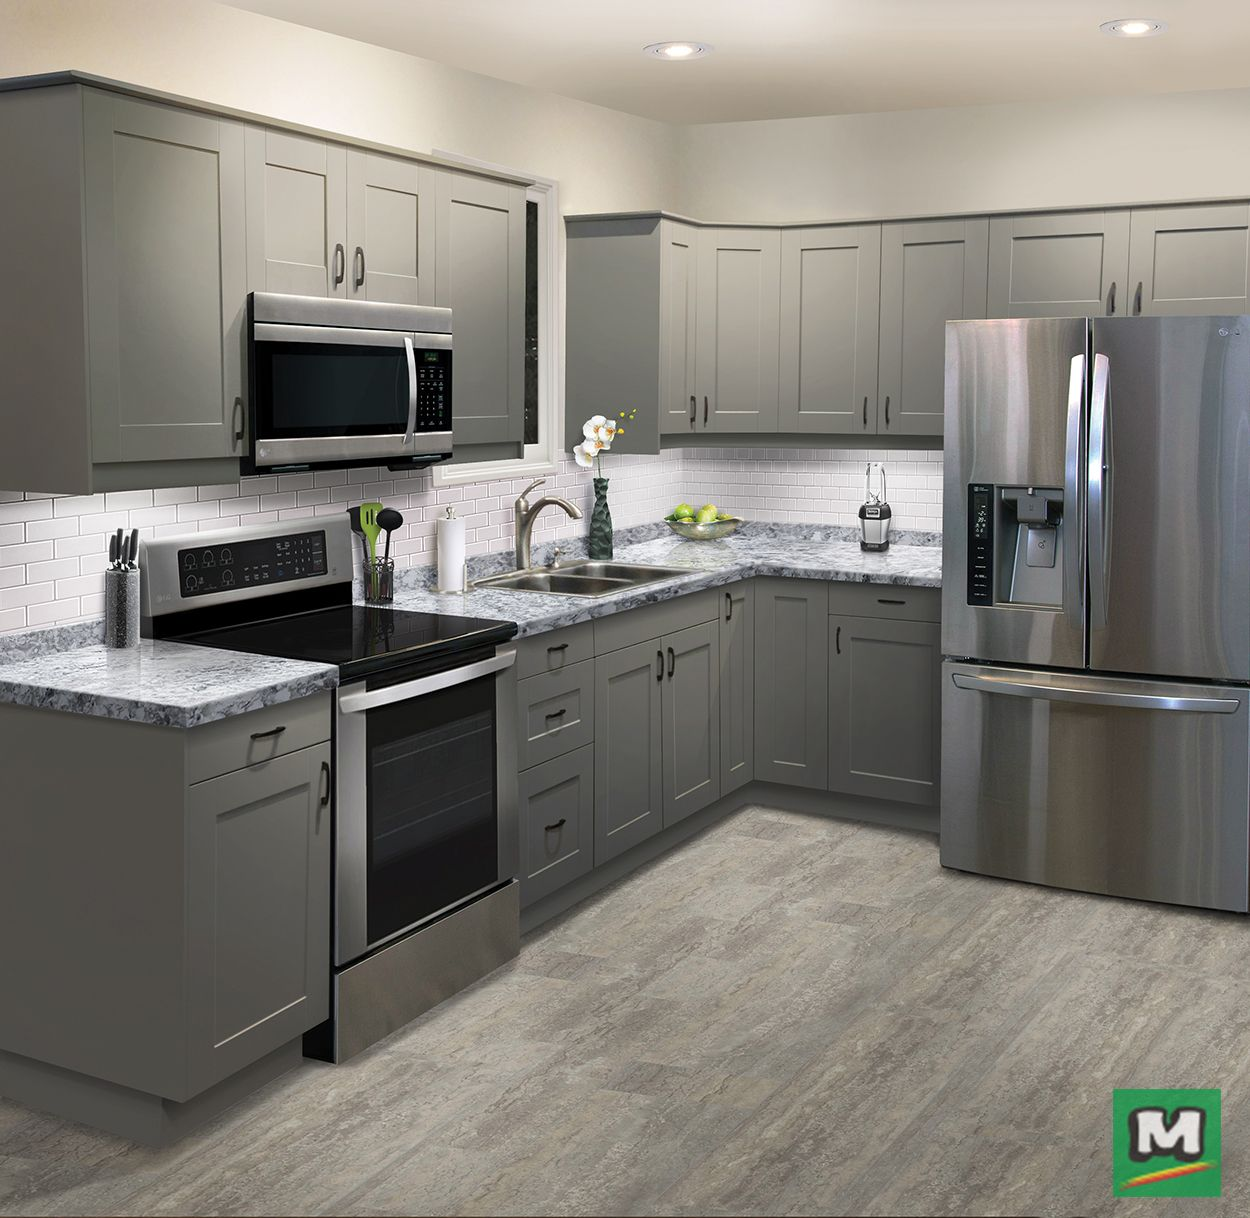 Klearvue Cabinetry Has It All From Full Access Cabinet Construction To Elegant Finishes This Custom C Menards Kitchen Cabinets Menards Kitchen Condo Kitchen